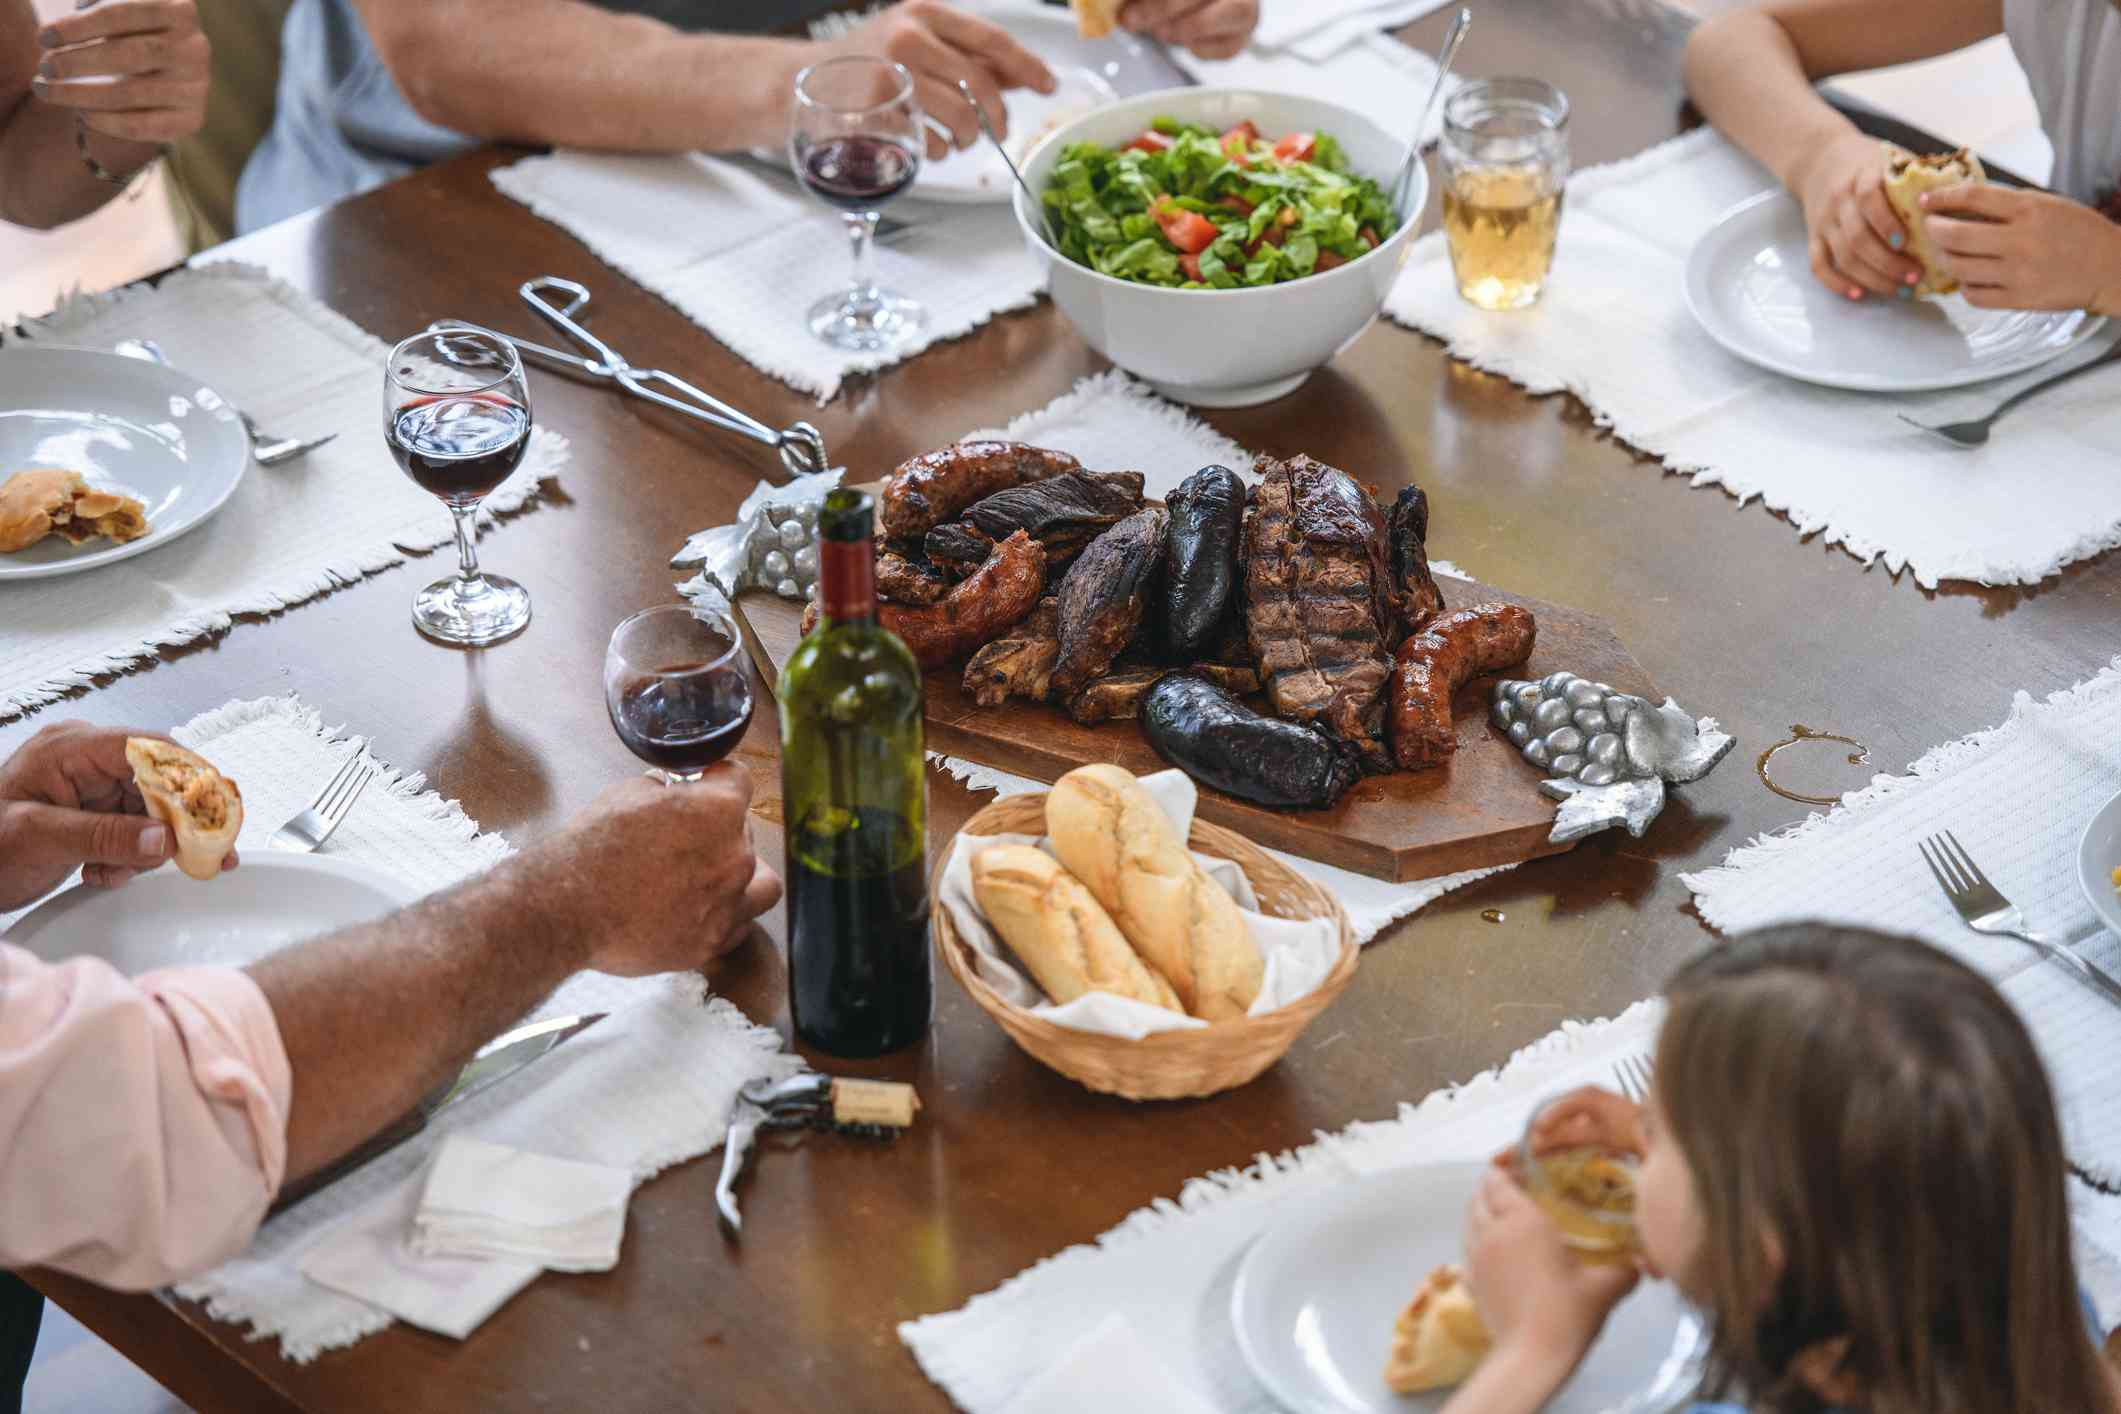 Traditional Argentine Asado Midday Meal on Dining Table